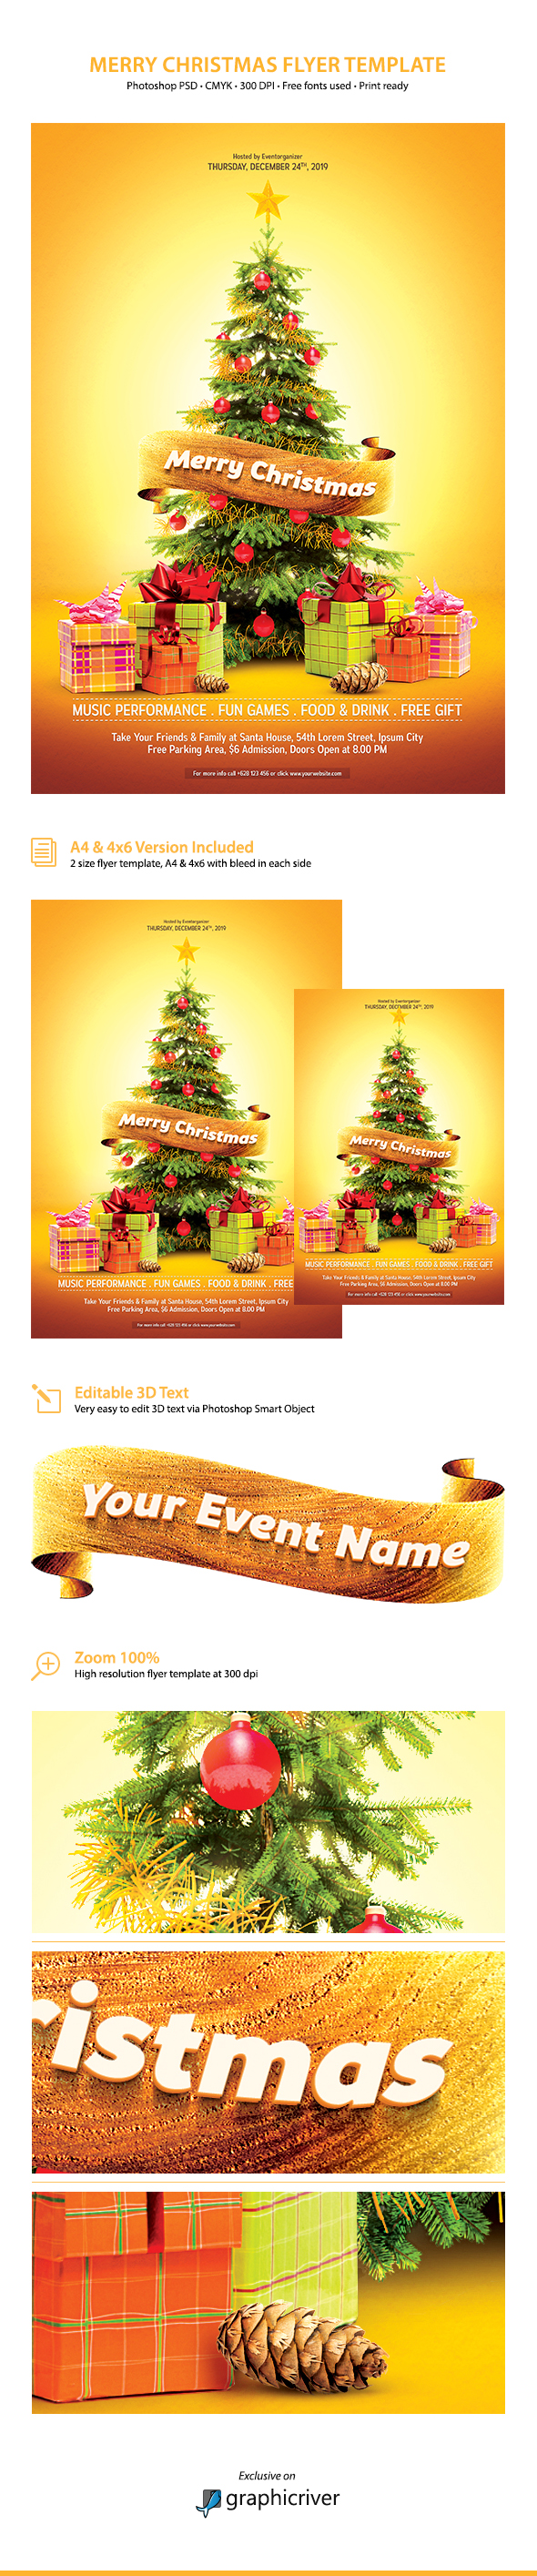 Merry Christmas Flyer Template Graphicriver By Affant On